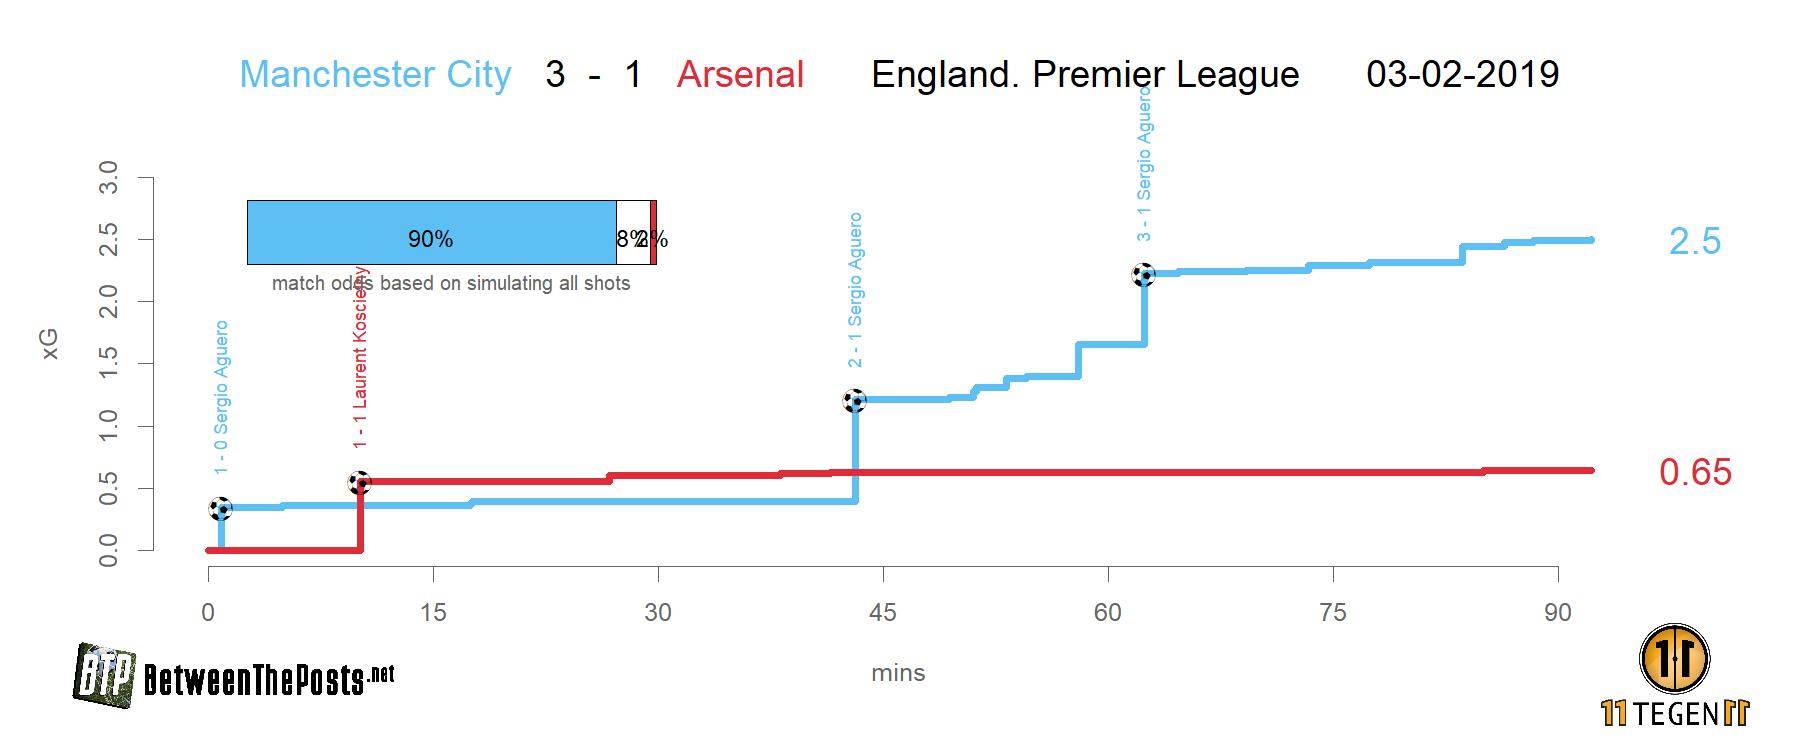 Expected goals plot Manchester City - Arsenal 3-1 Premier League